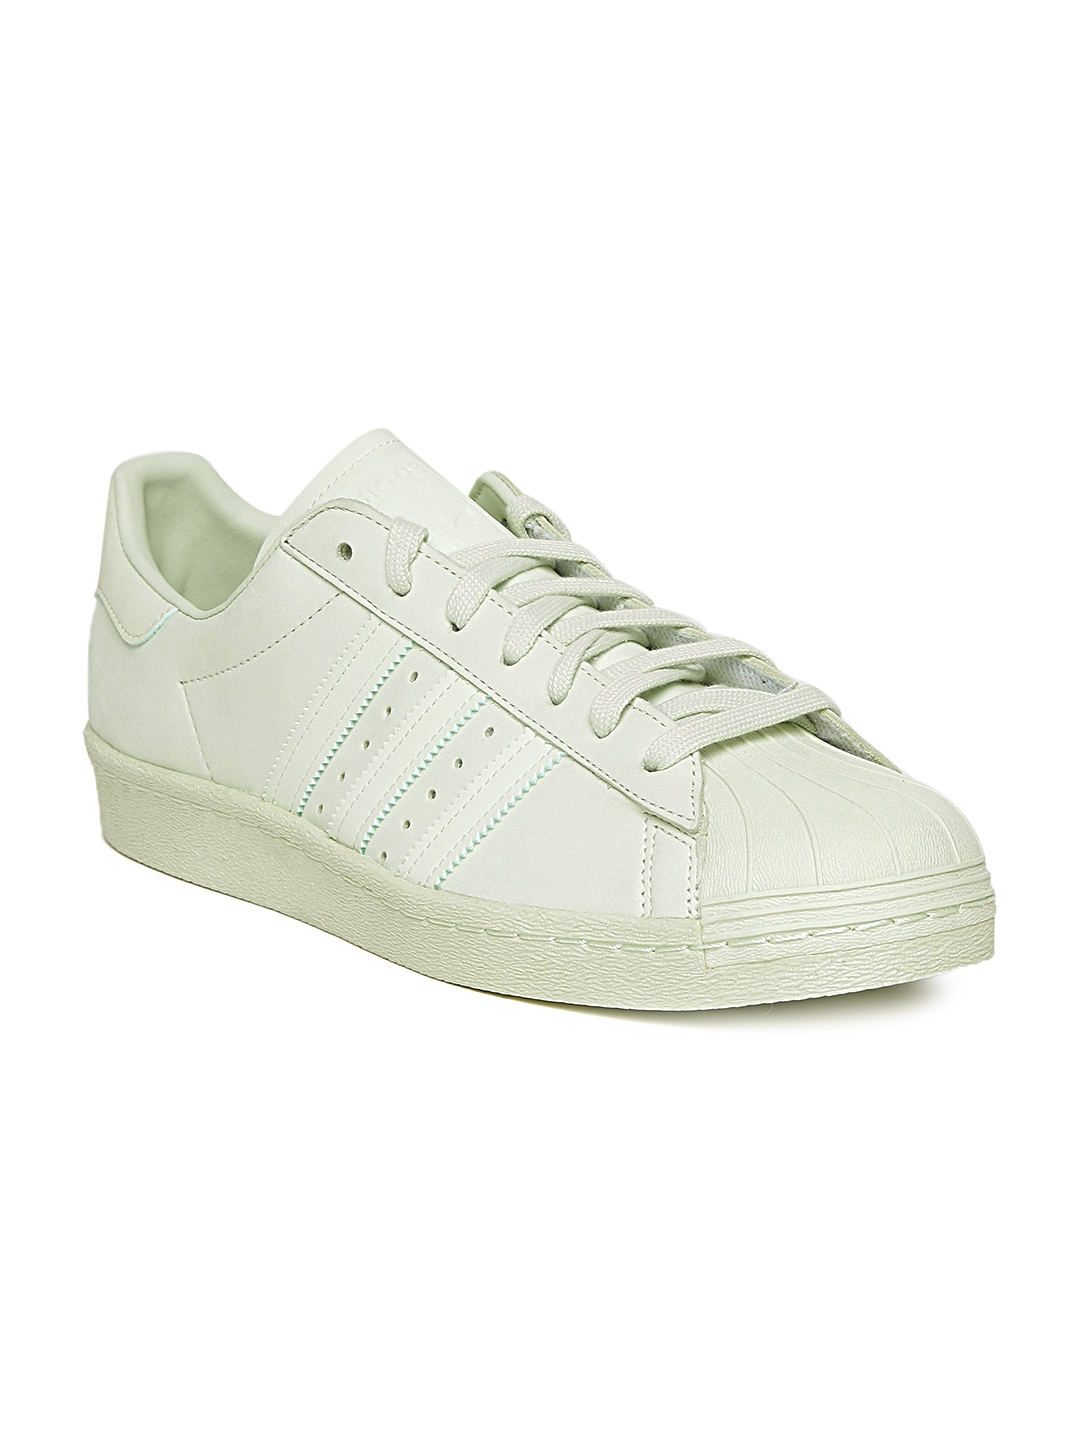 f7ae856207e0 Buy ADIDAS Originals Men Light Green Superstar 80S Leather Sneakers ...